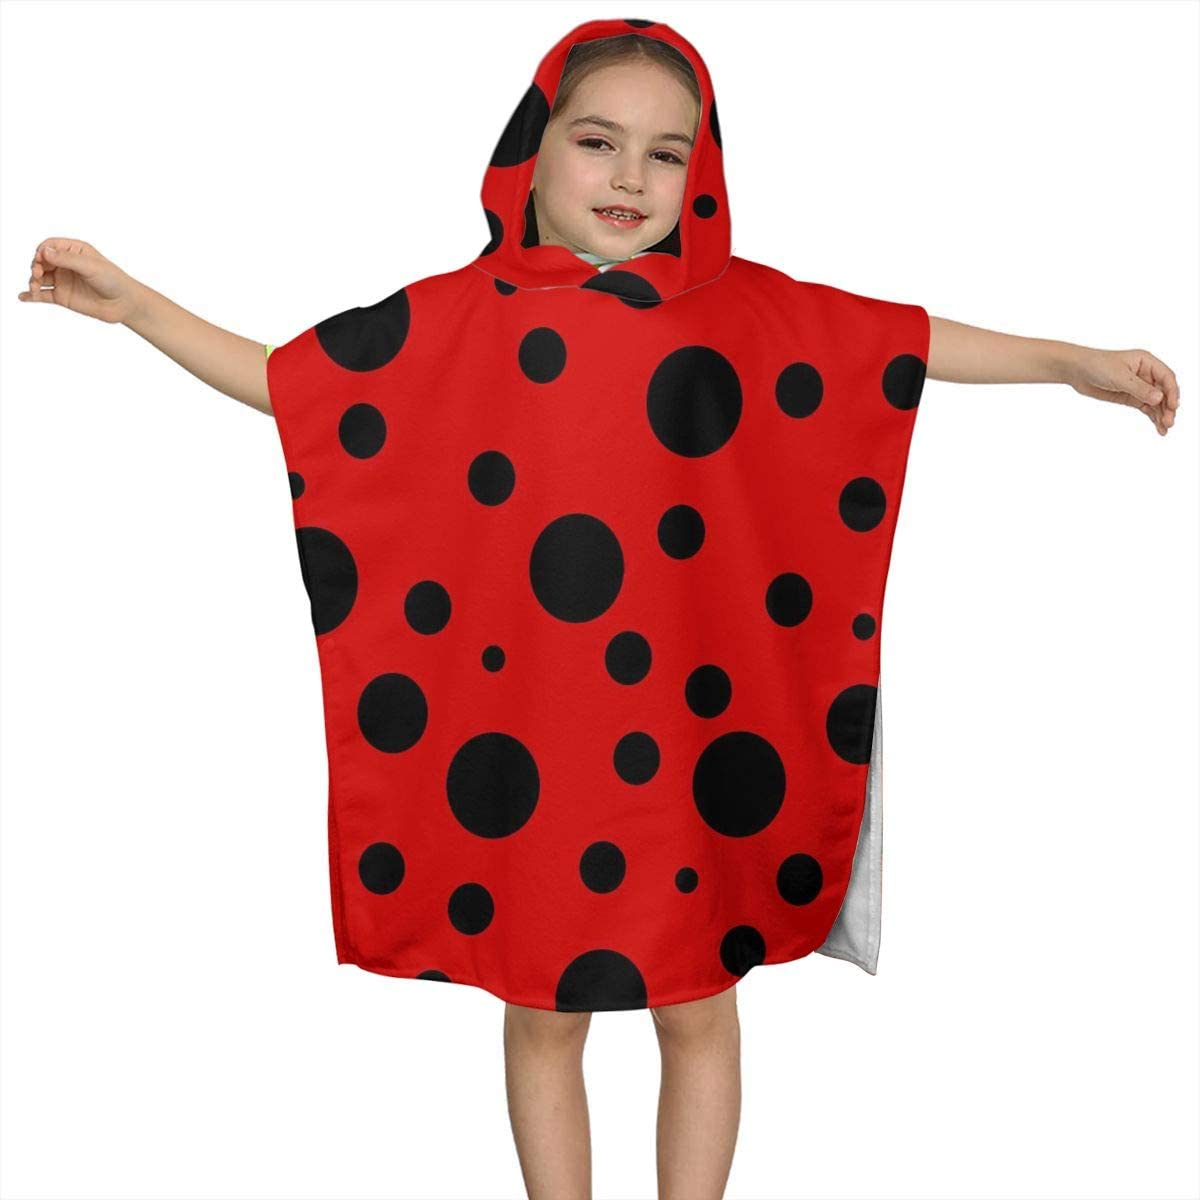 Kiuloam Kids Children Hooded Towel, Ladybug Dots on Red Hooded Bath Towel for Bath Pool and Beach, Fits 2-7 Years Old Boys and Girls